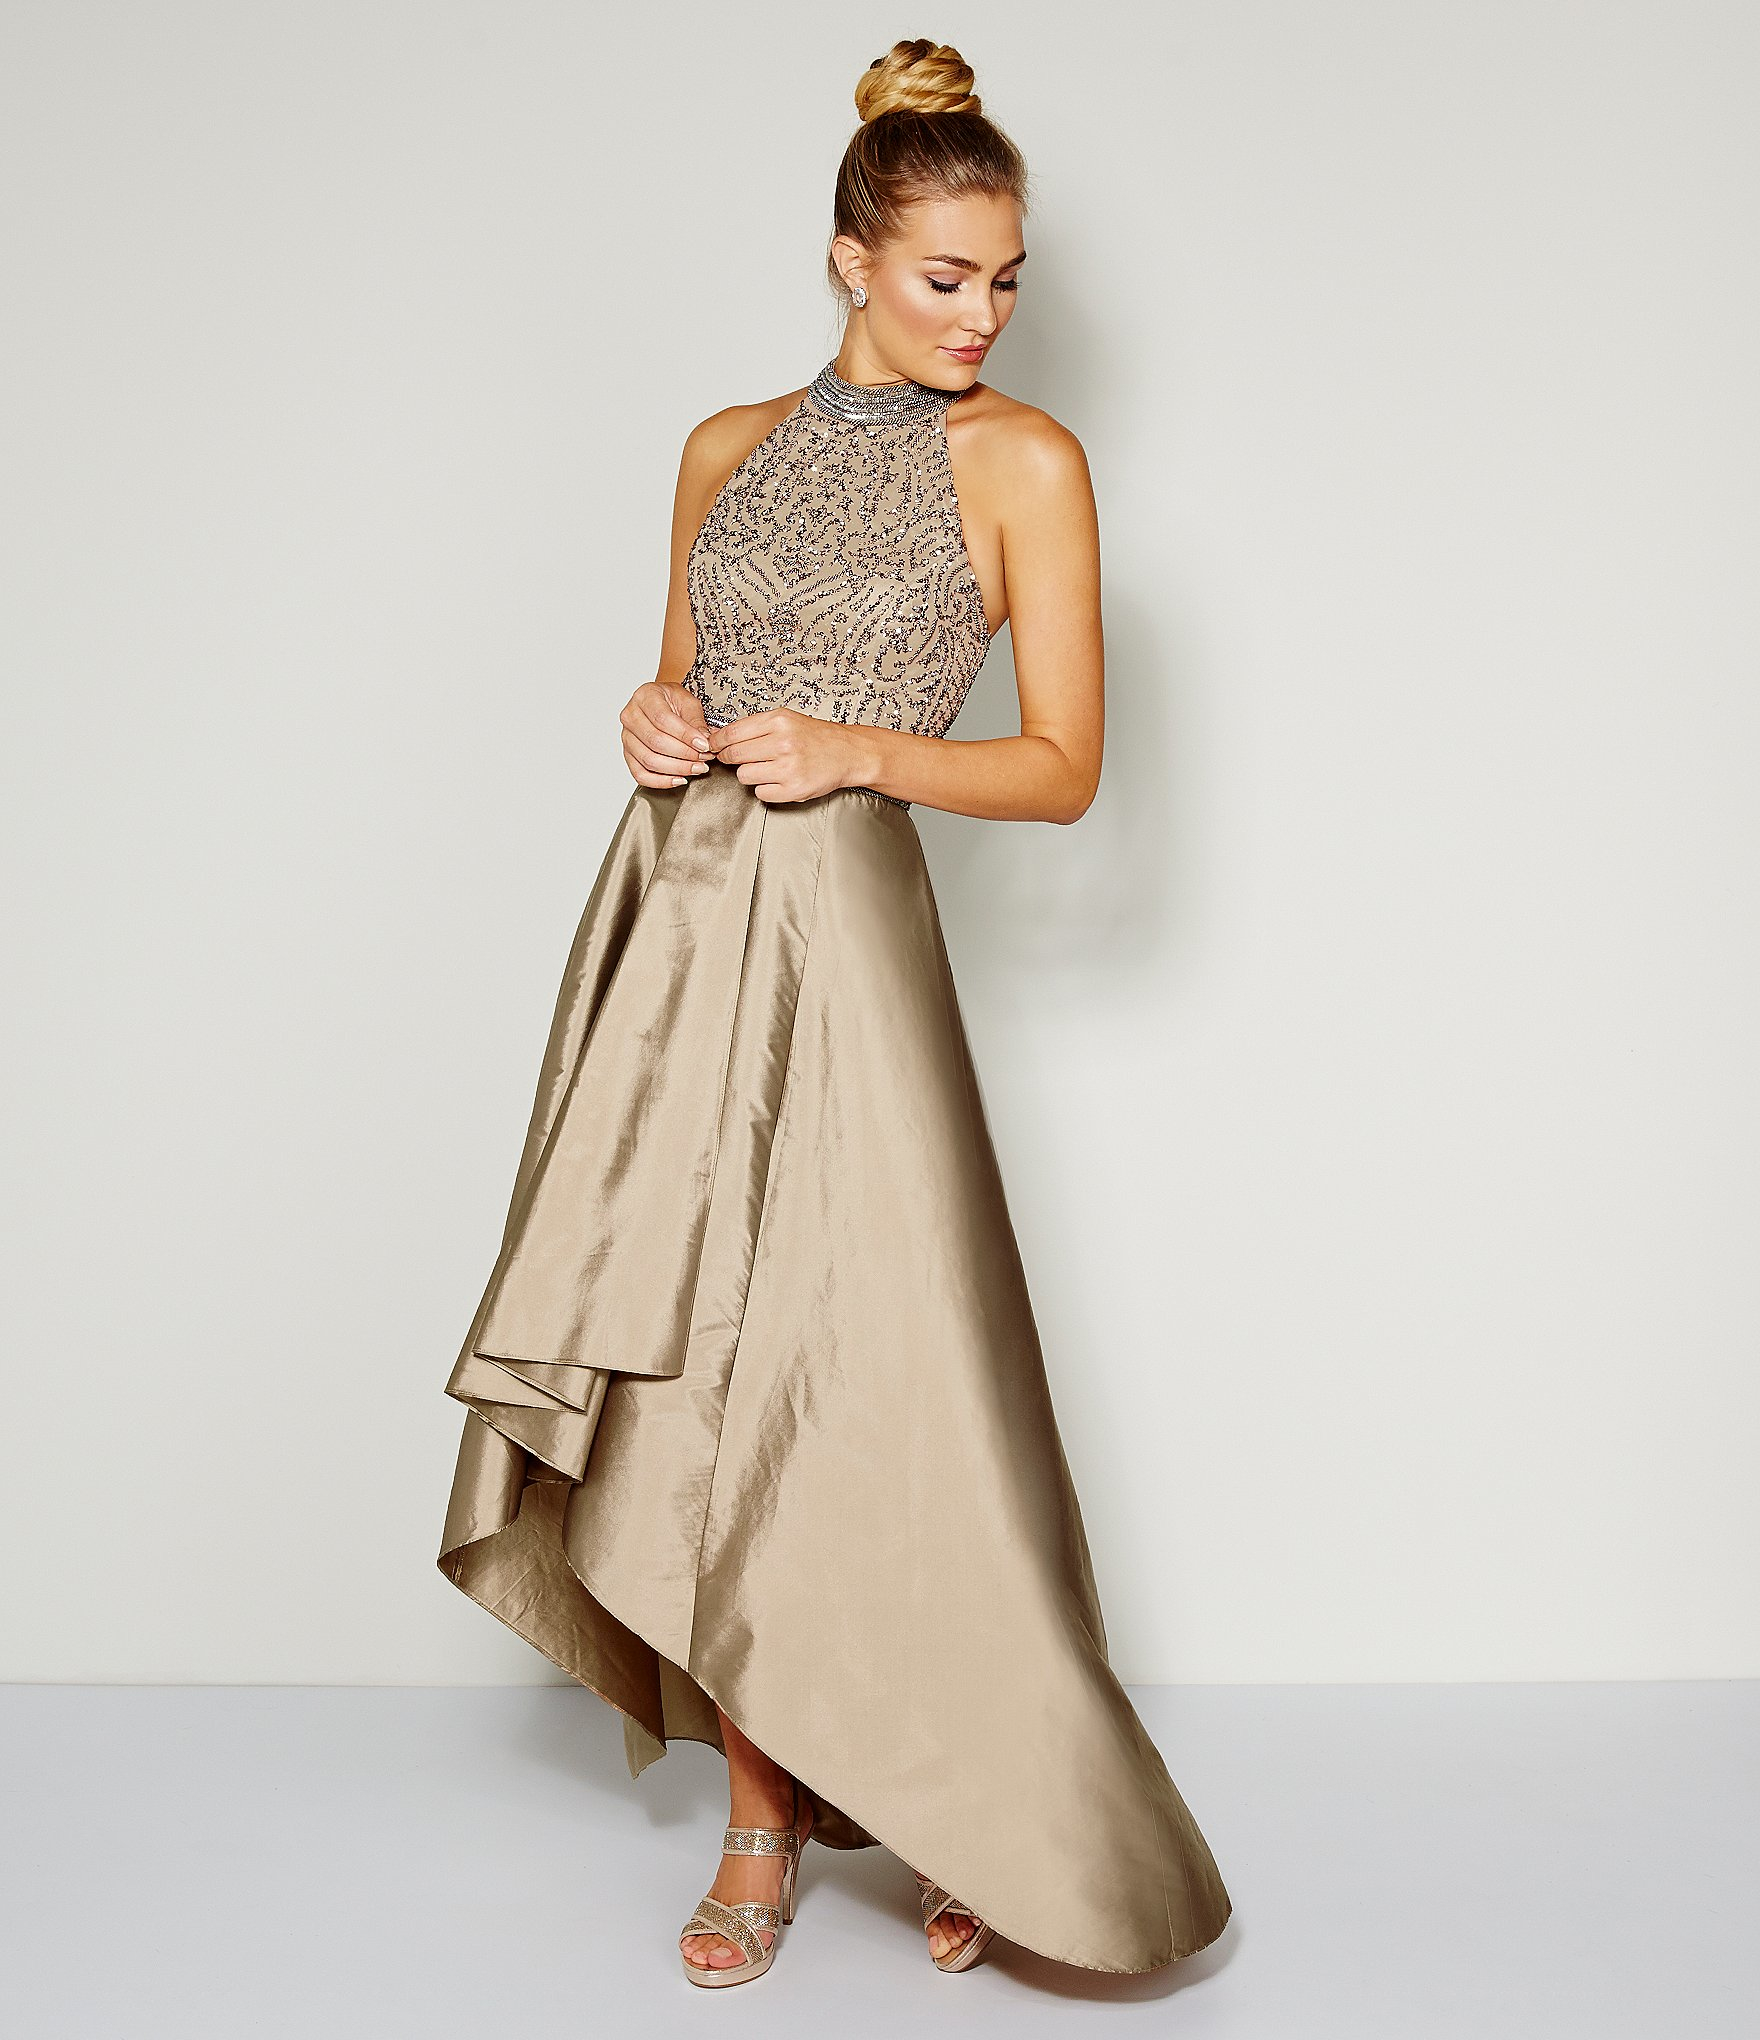 79880f4c7a7 Adrianna Papell Beaded Halter Hi-low Gown in Metallic - Lyst